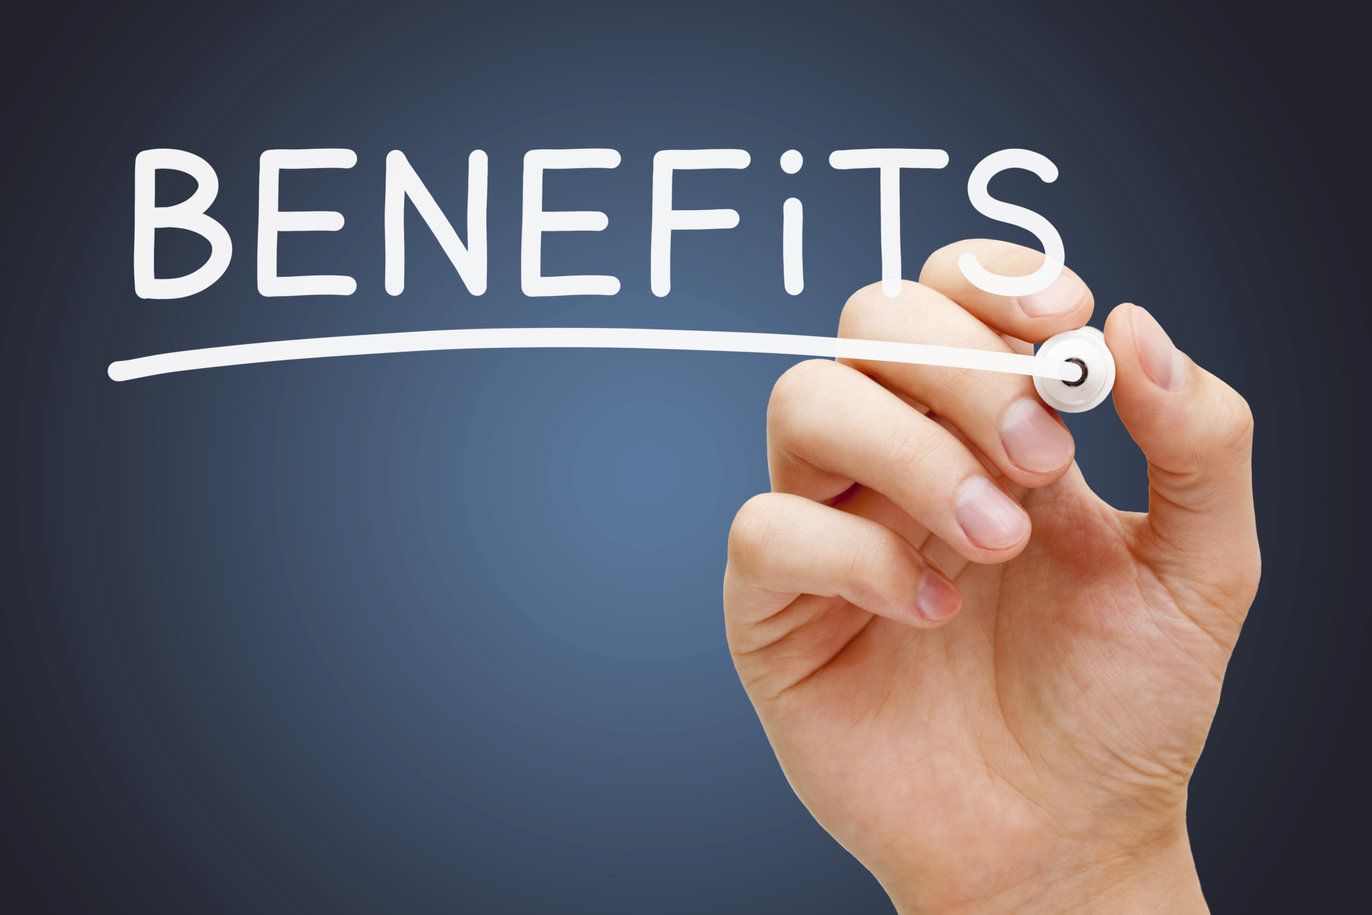 Why do you must provide mandatory benefits?